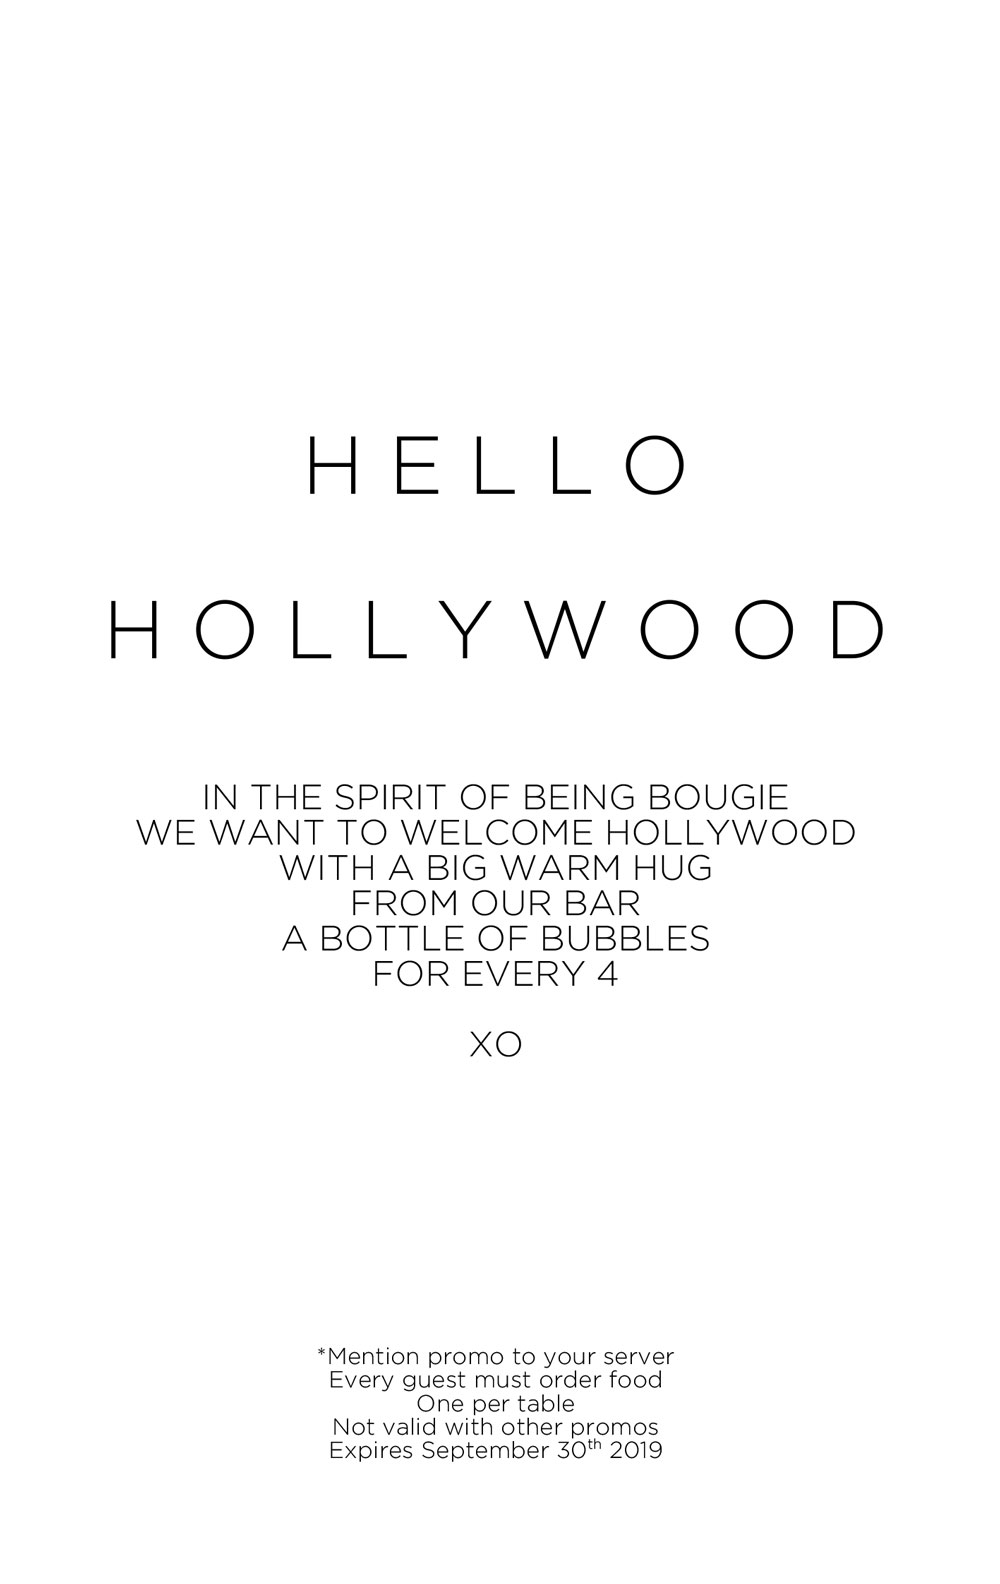 HELLO-HOLLYWOOD-2019